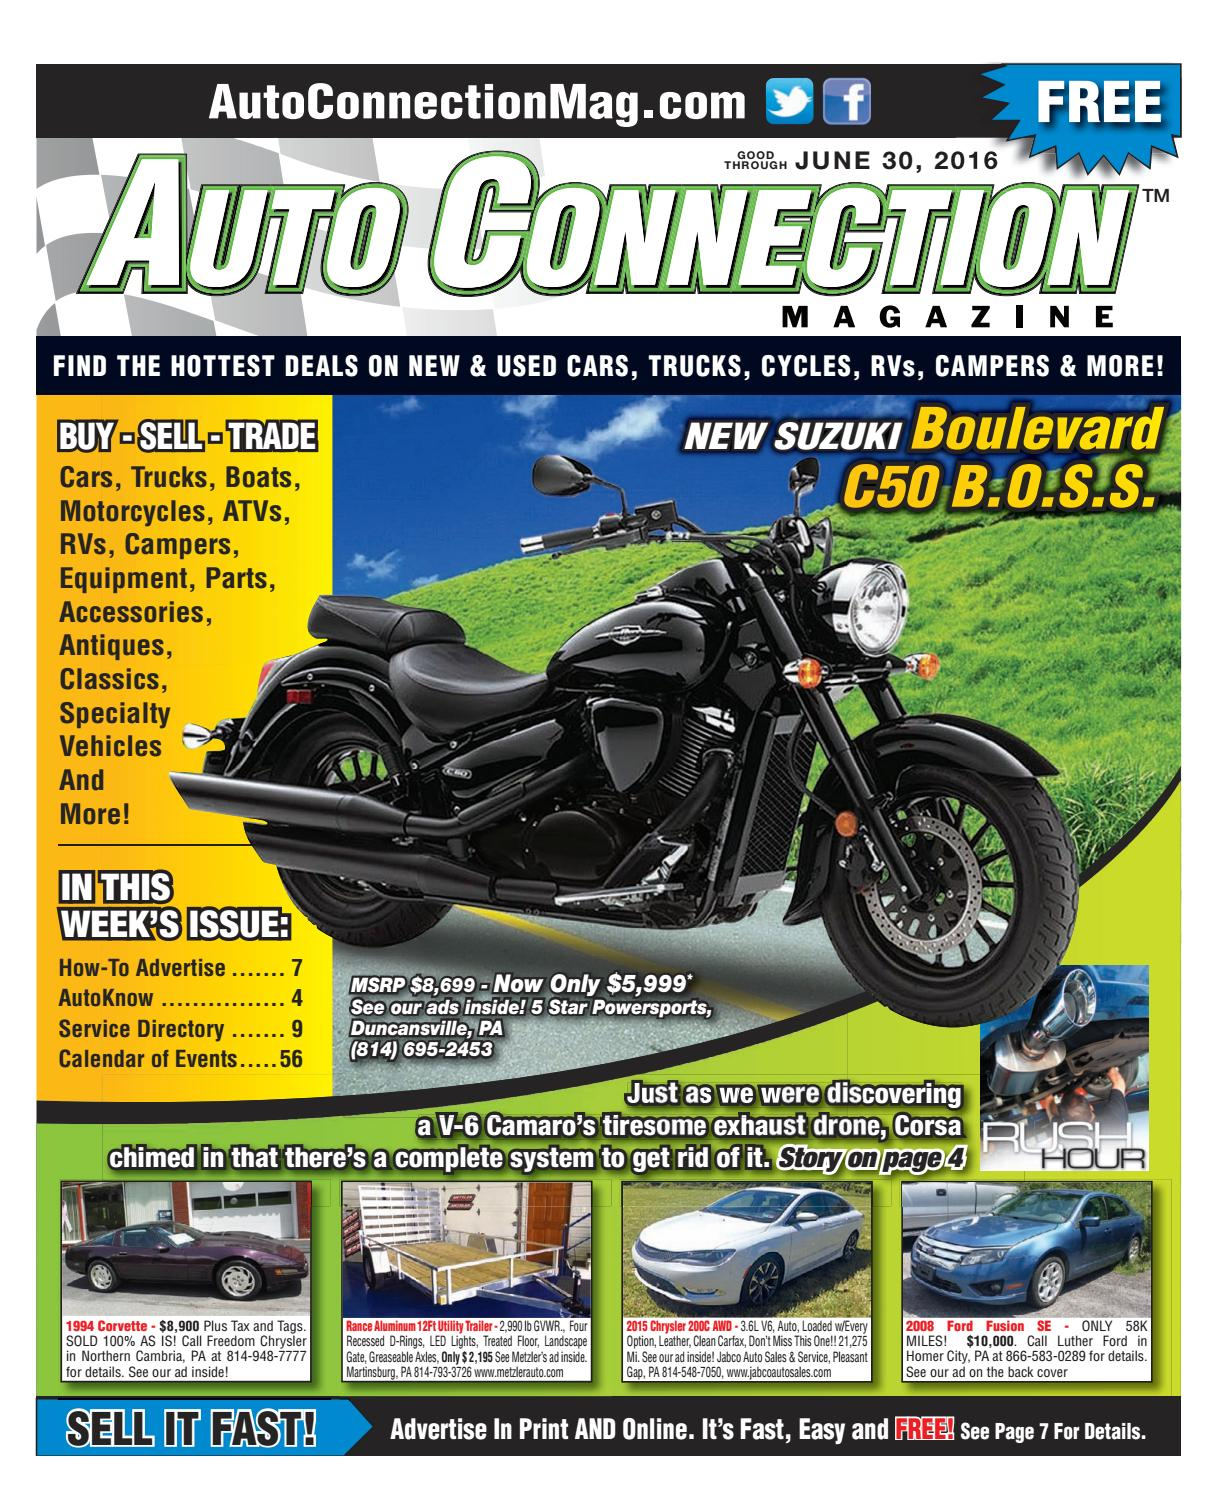 06 30 16 Auto Connection Magazine By Issuu 24v Trolling Motor General Discussion Forum Indepth Outdoors